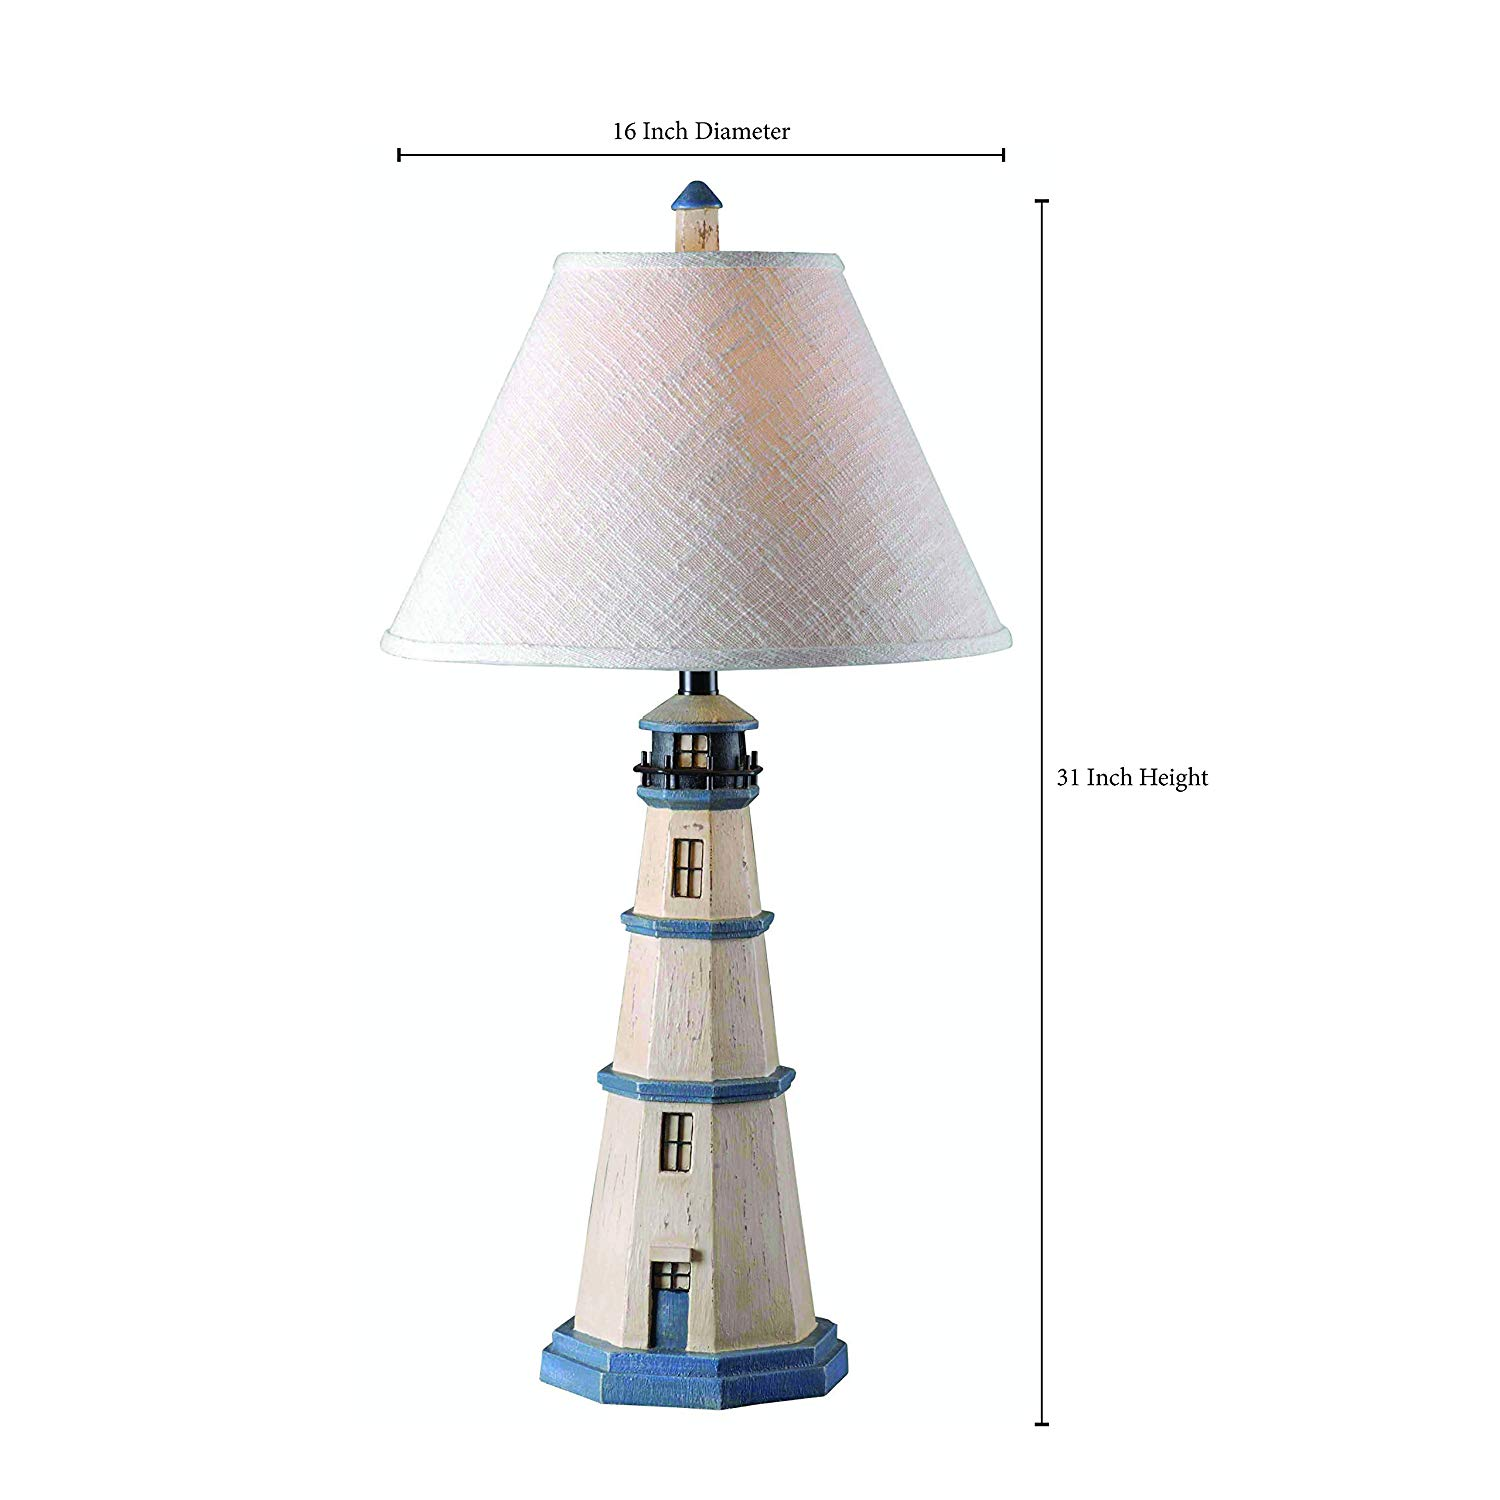 kenroy home nantucket lighthouse table lamp inch height nautical accent lamps diameter antique white vintage retro dining and chairs ethan allen chippendale homemade wood coffee